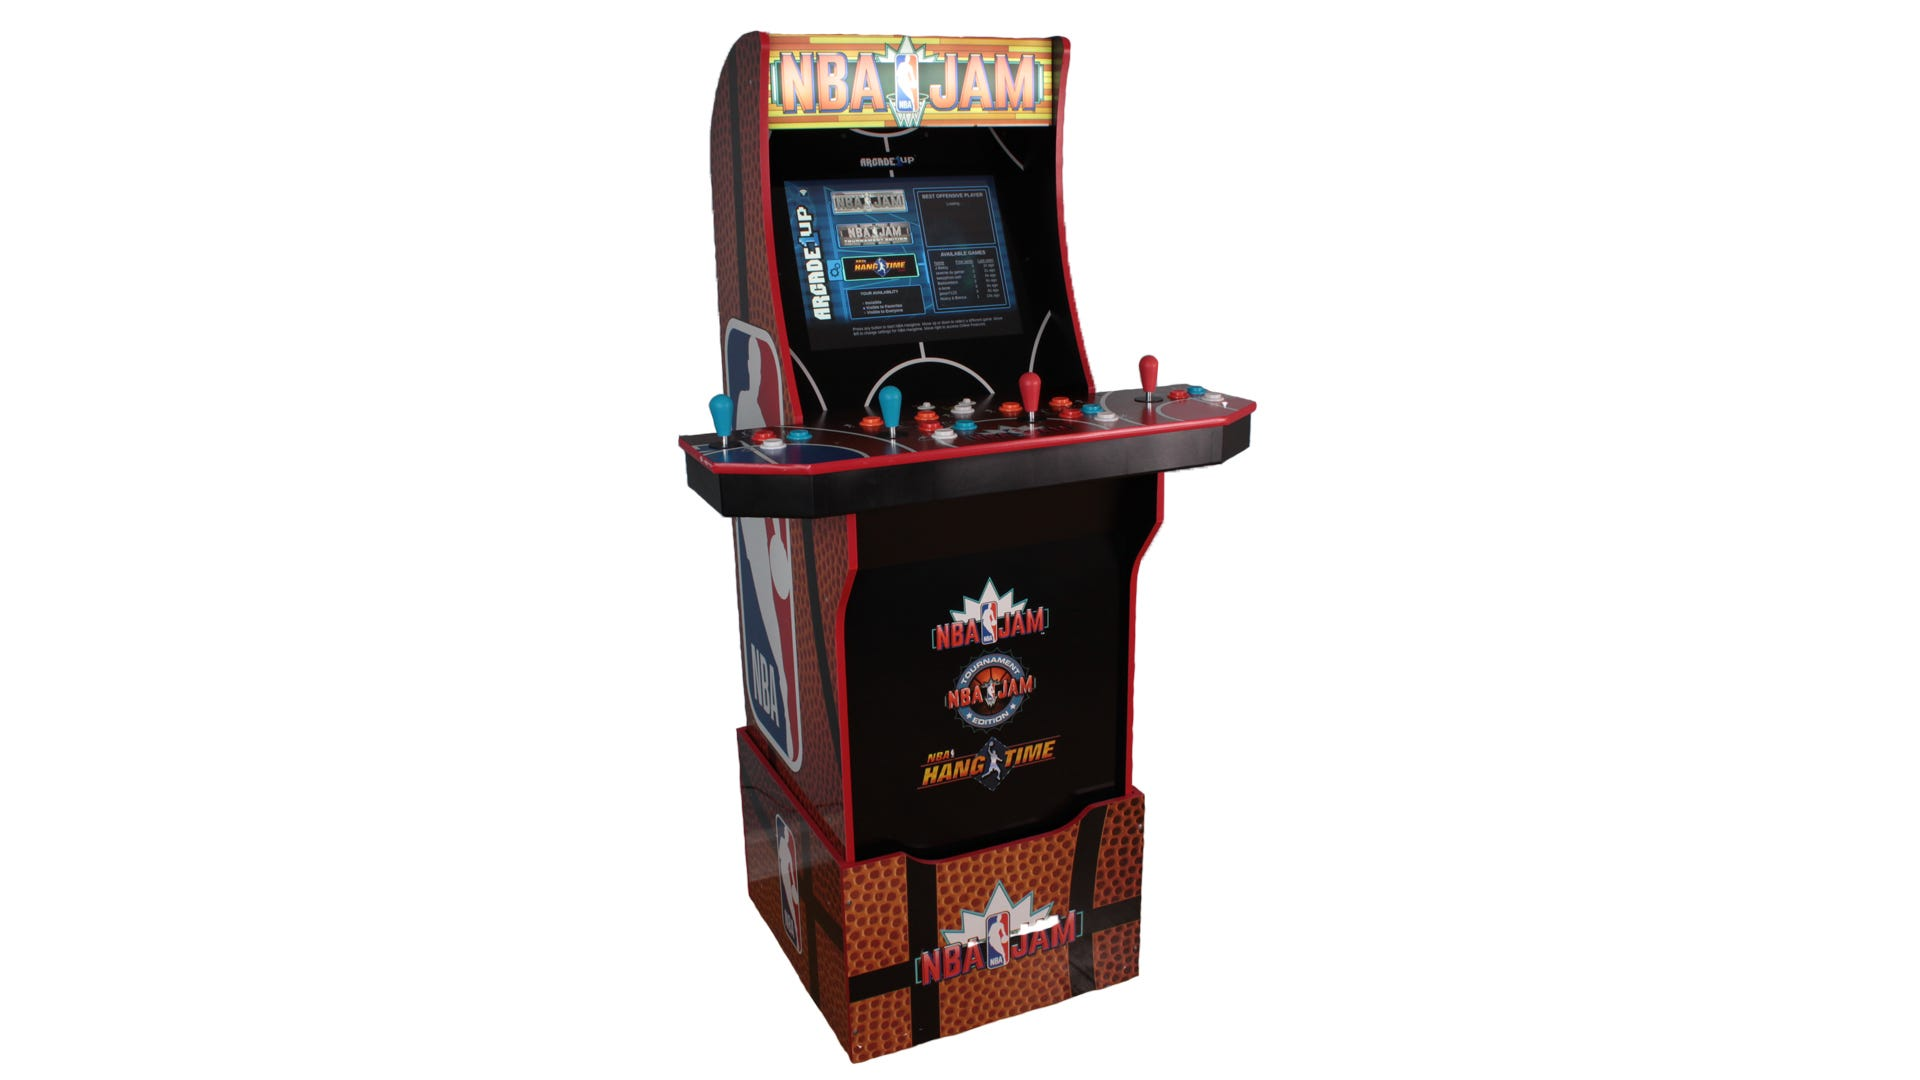 A profile view of the Arcade1Up NBA Jam machine